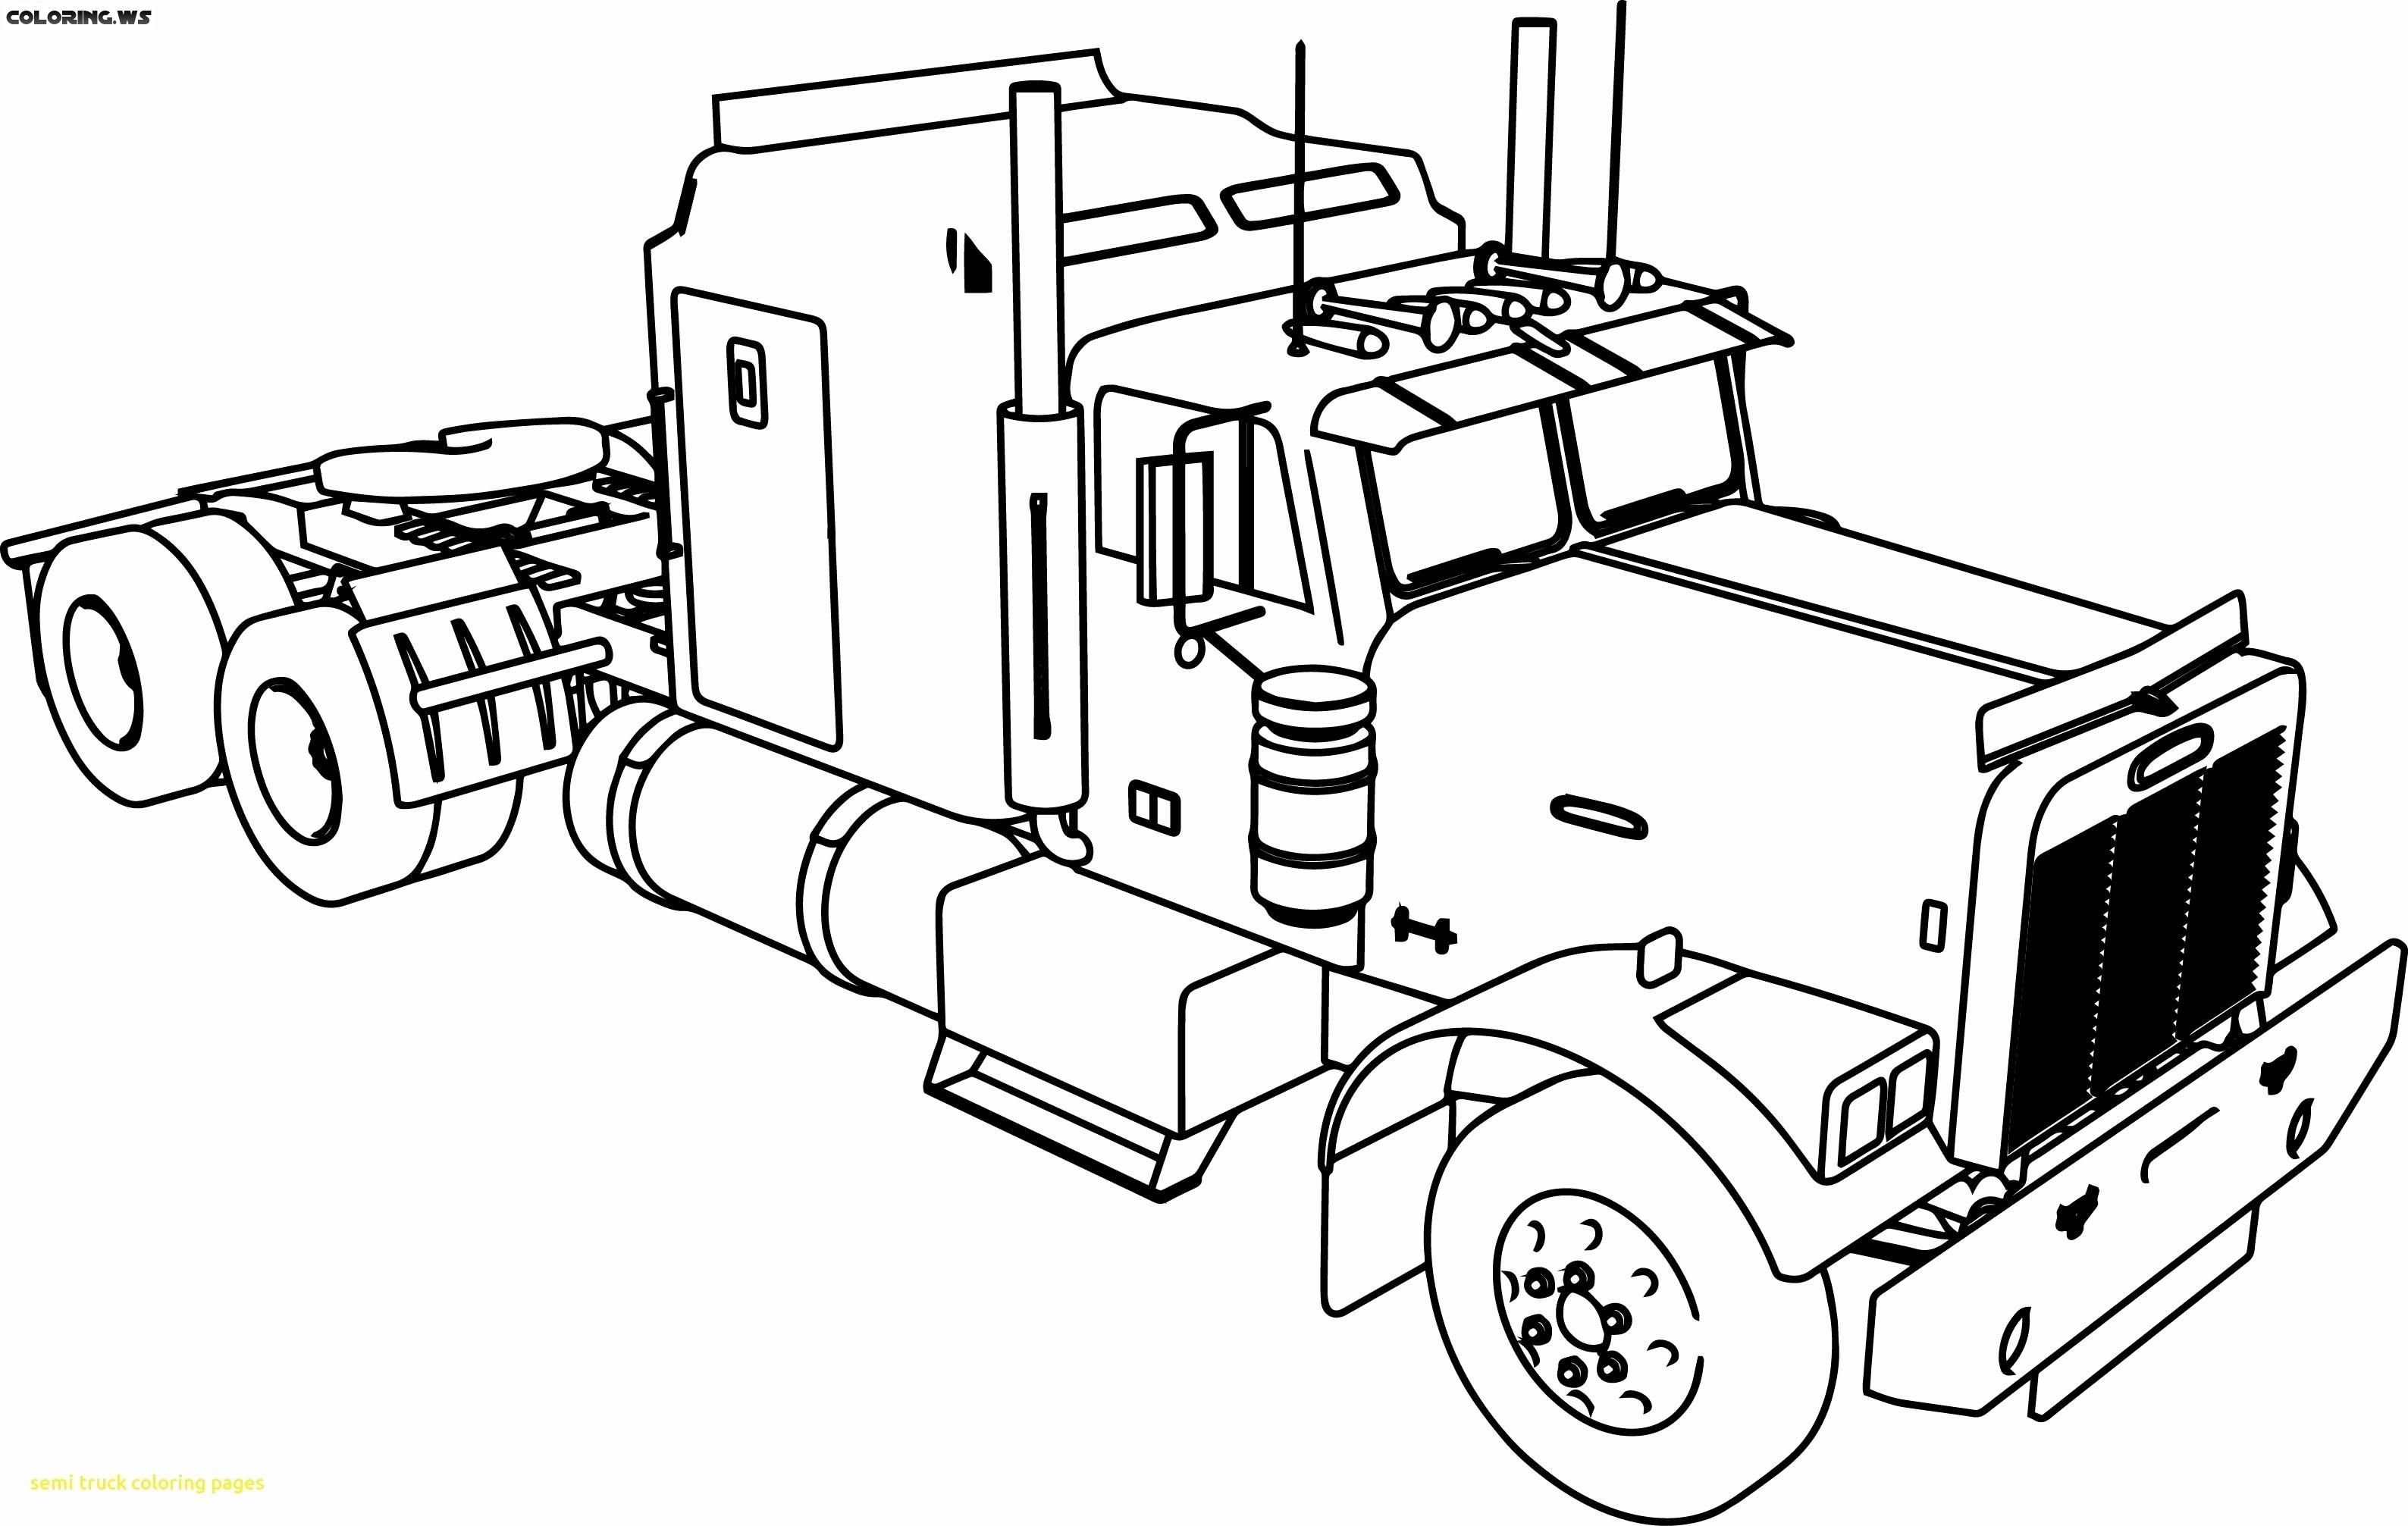 Semi Truck Coloring Pages Anyone Good At Drawing I Need A